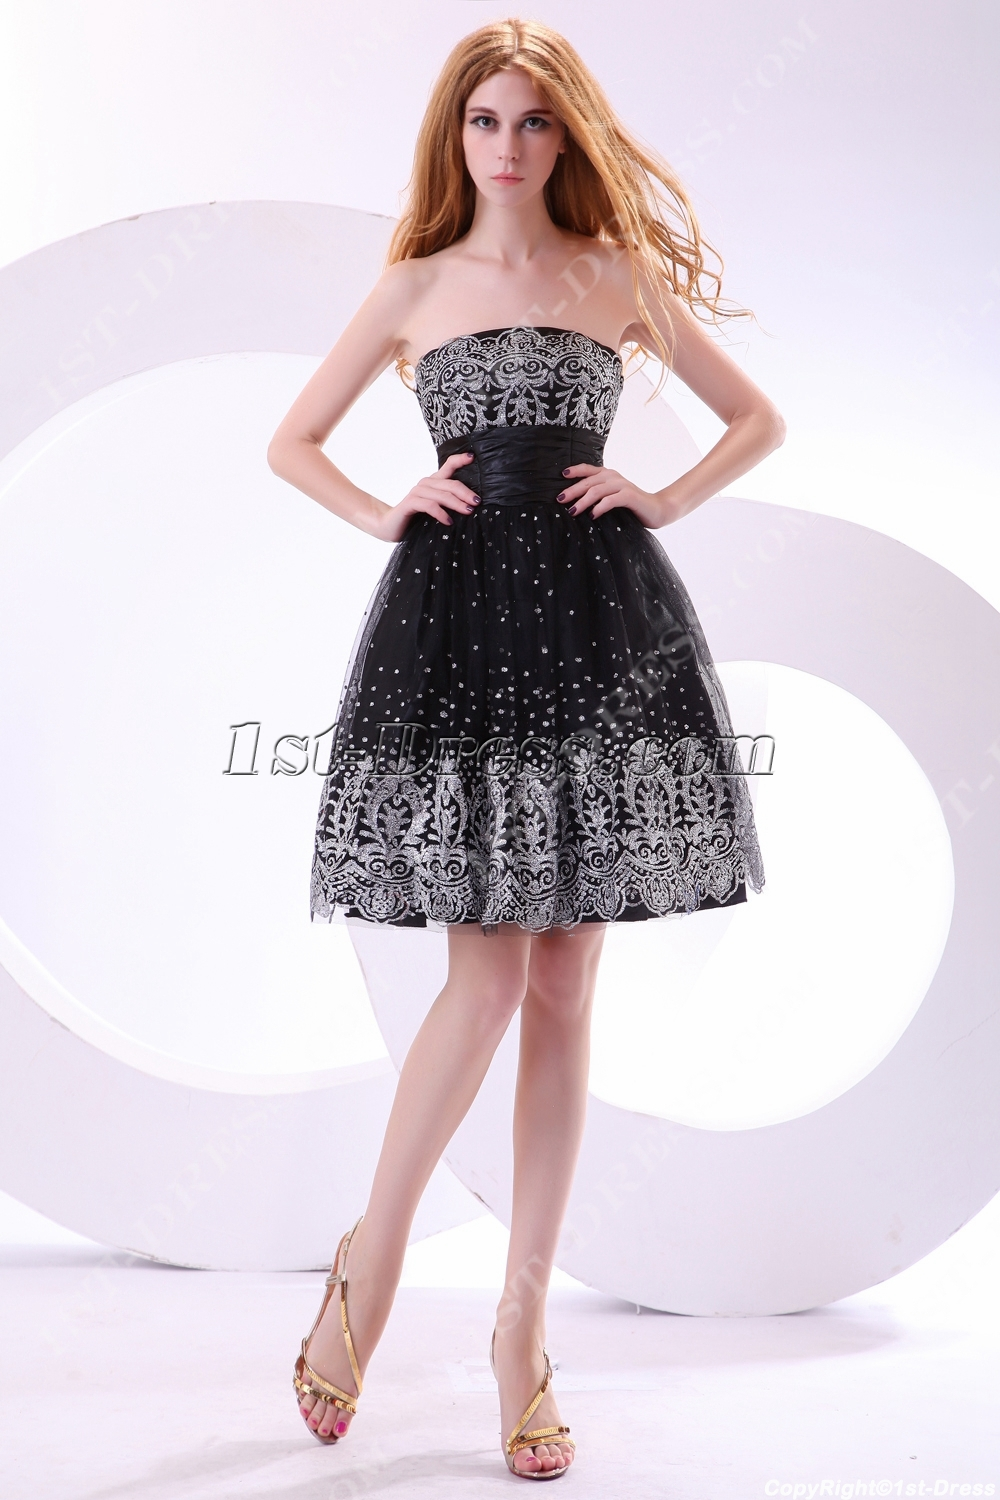 Elegant Black and Silver Short Junior Prom Dresses:1st-dress.com